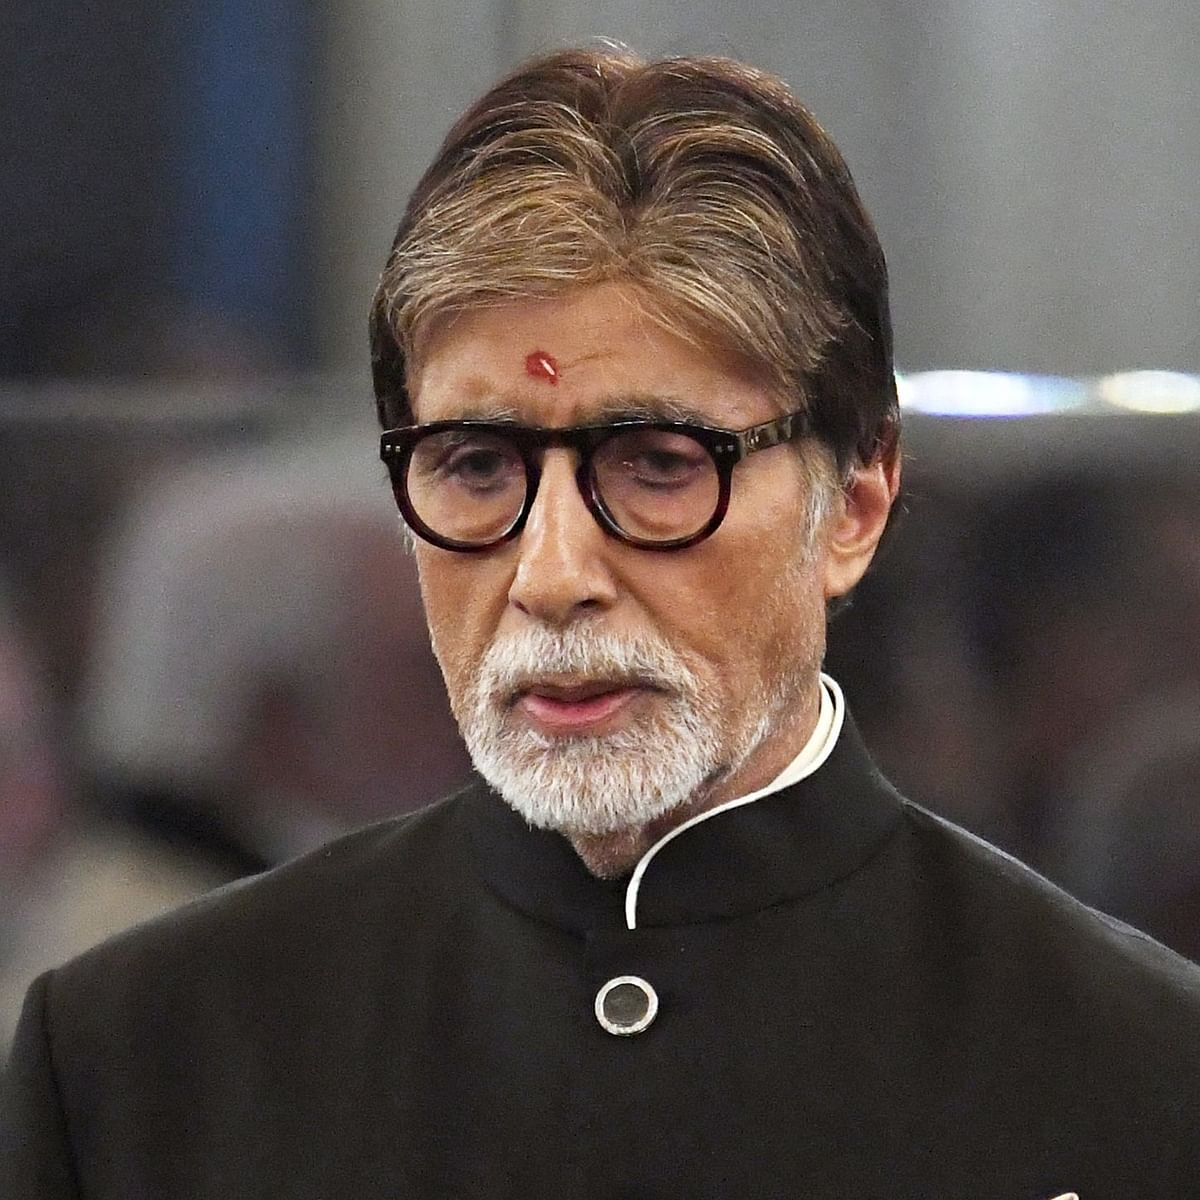 Amitabh Bachchan's explanation on today's date and Sean Connery's death will blow your mind